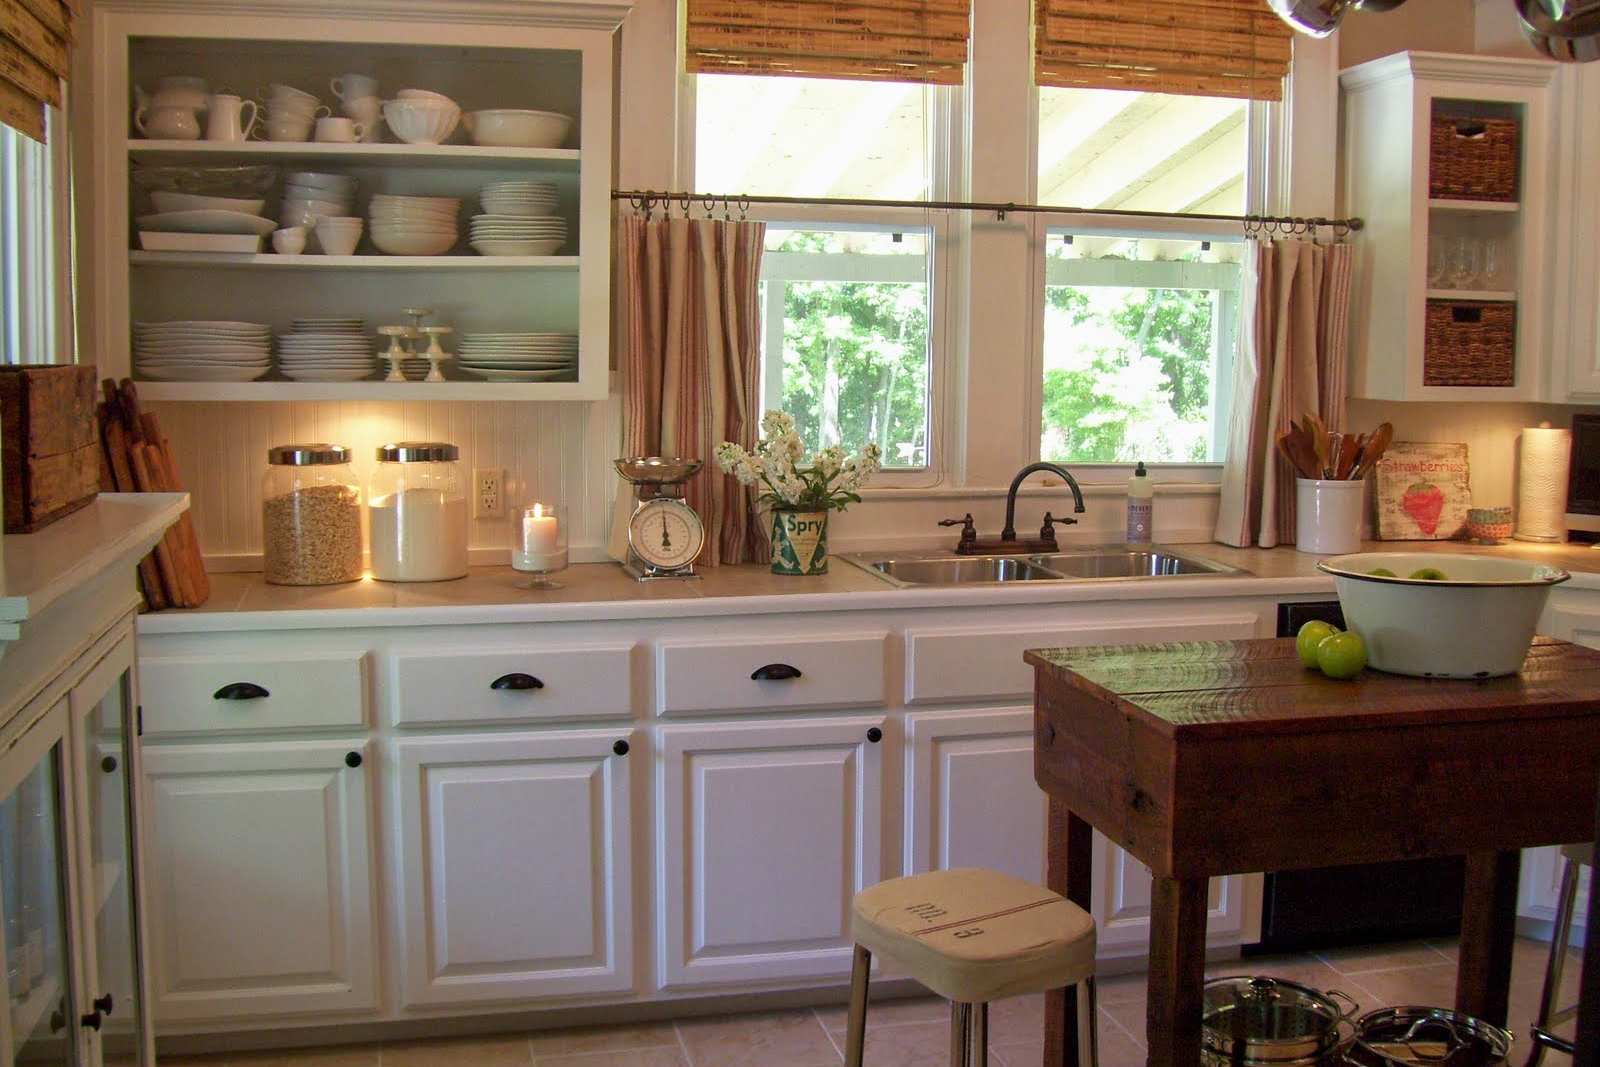 Remodeling A Kitchen Do It Yourself Kitchen Remodel with Kitchen Rehab On A Budget